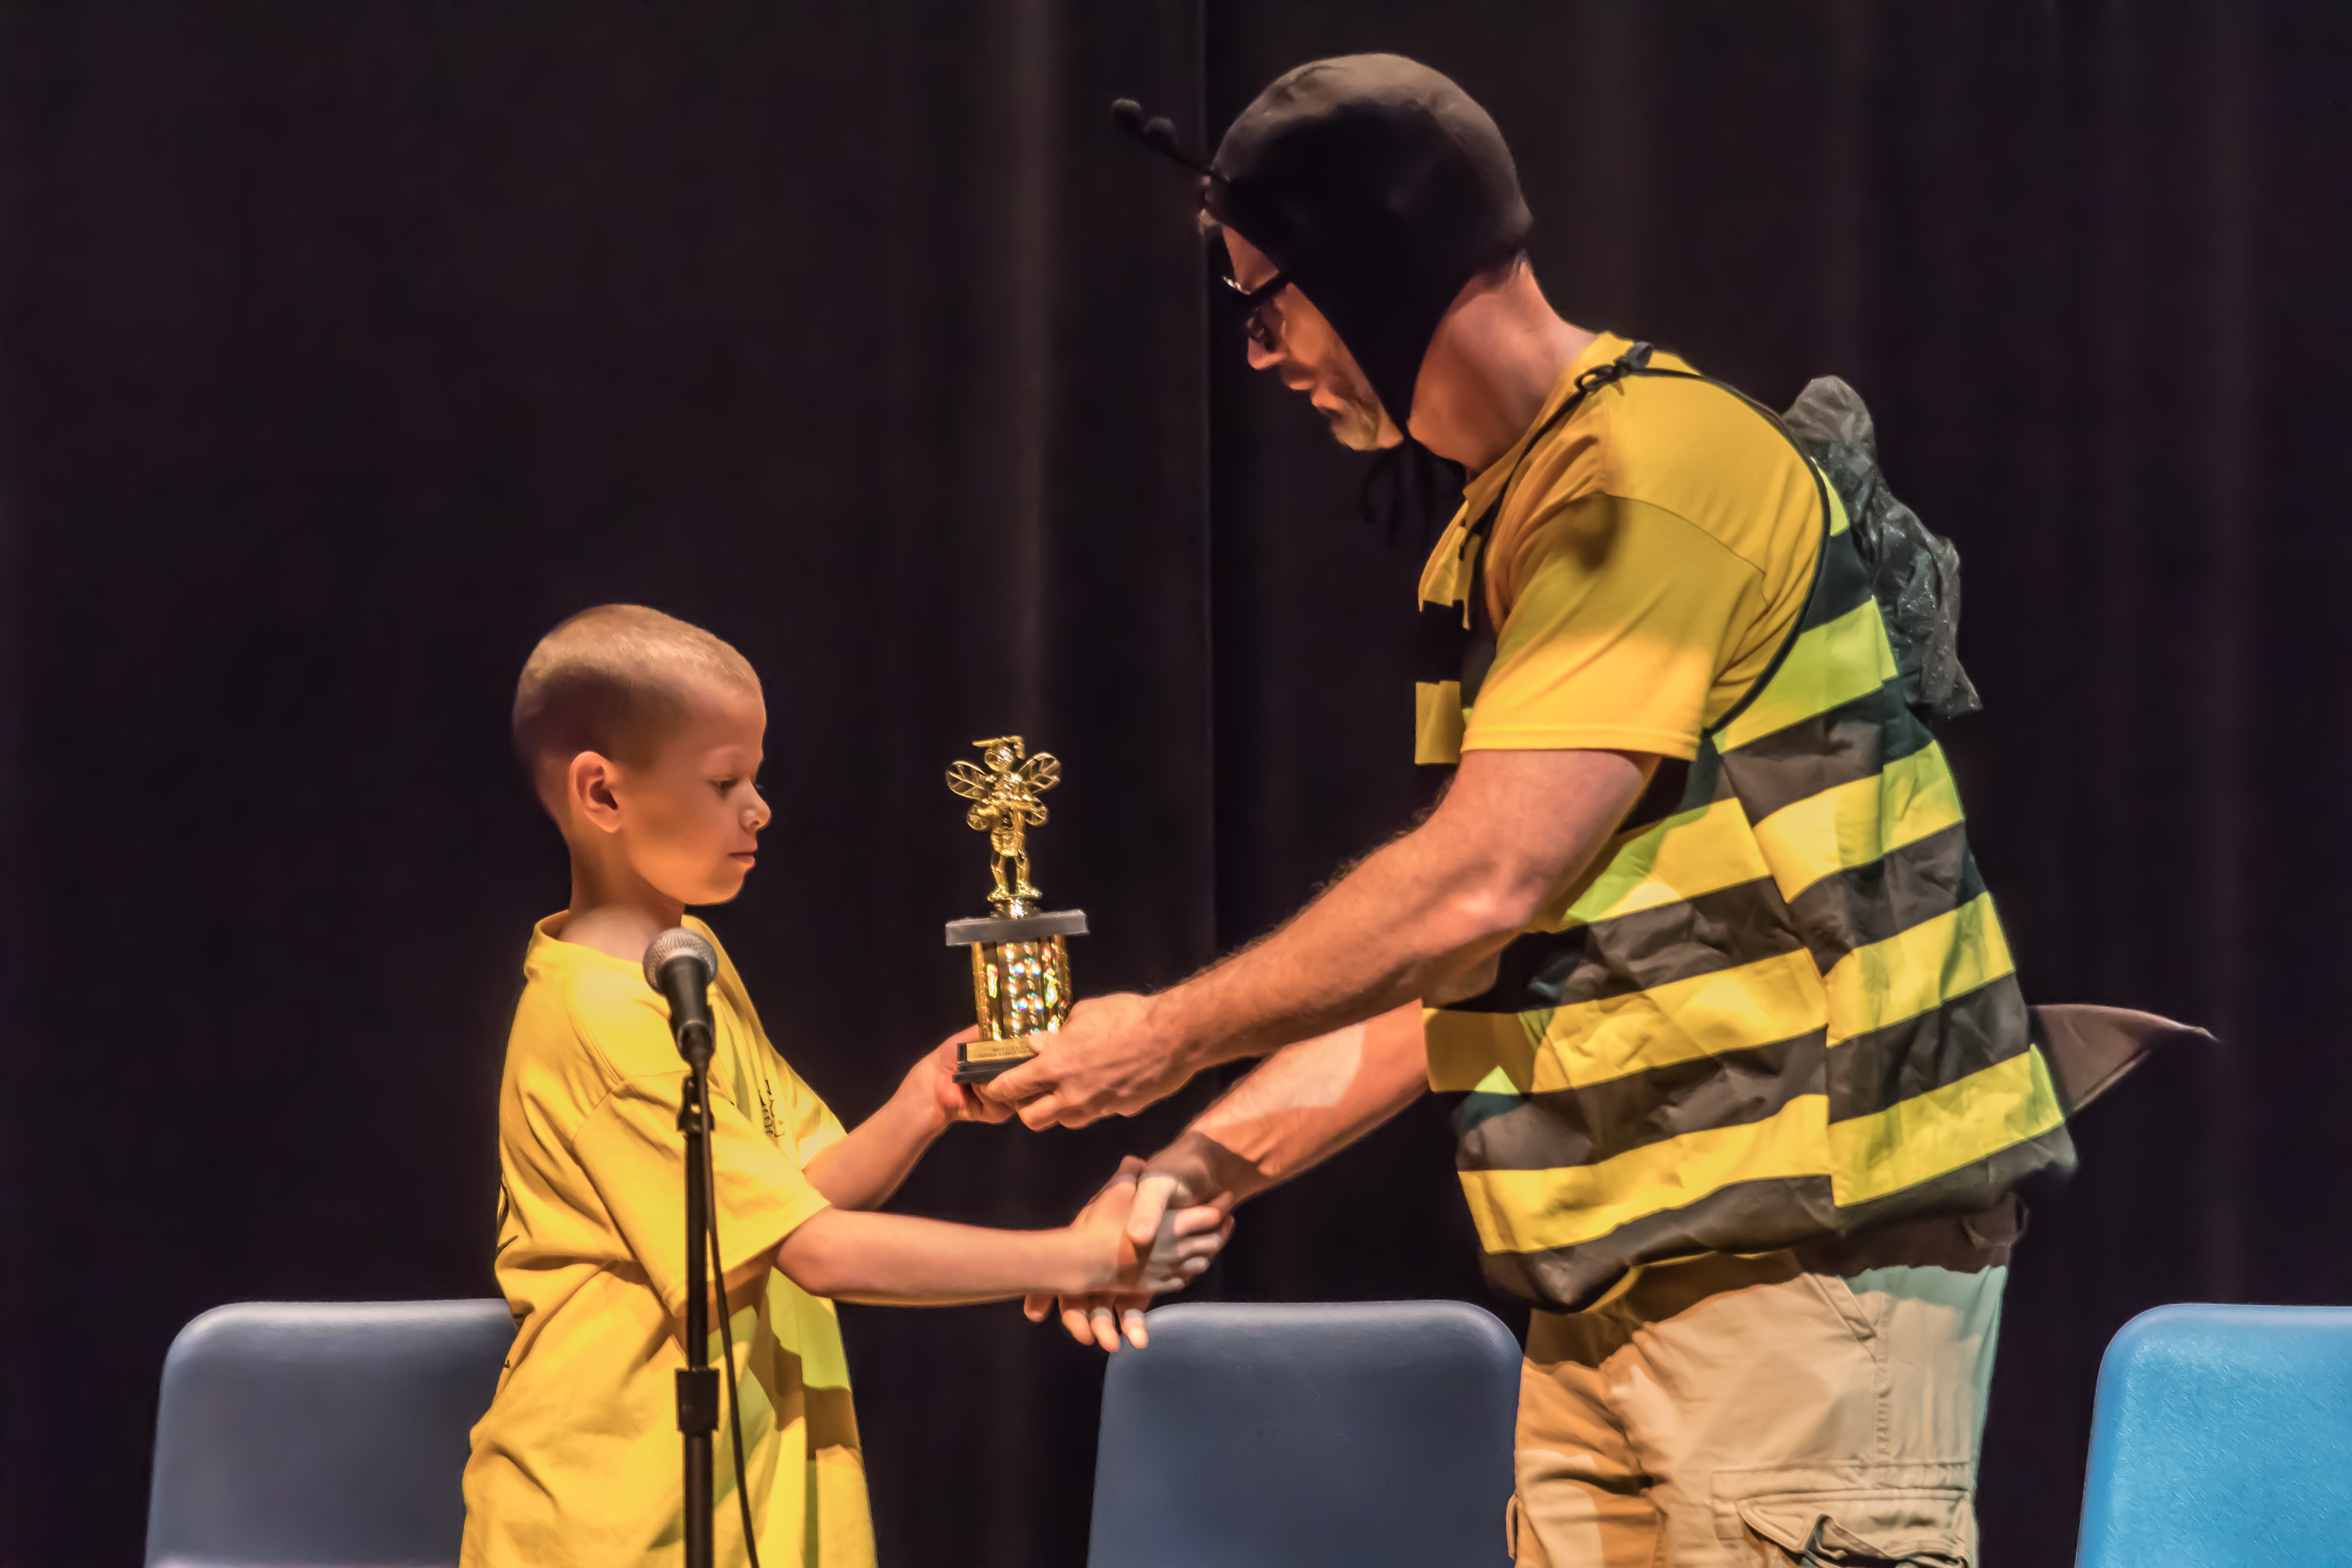 Worksheet Spelling Bee Questions And Answers elementary division crowns new spelling bee champion milton champion